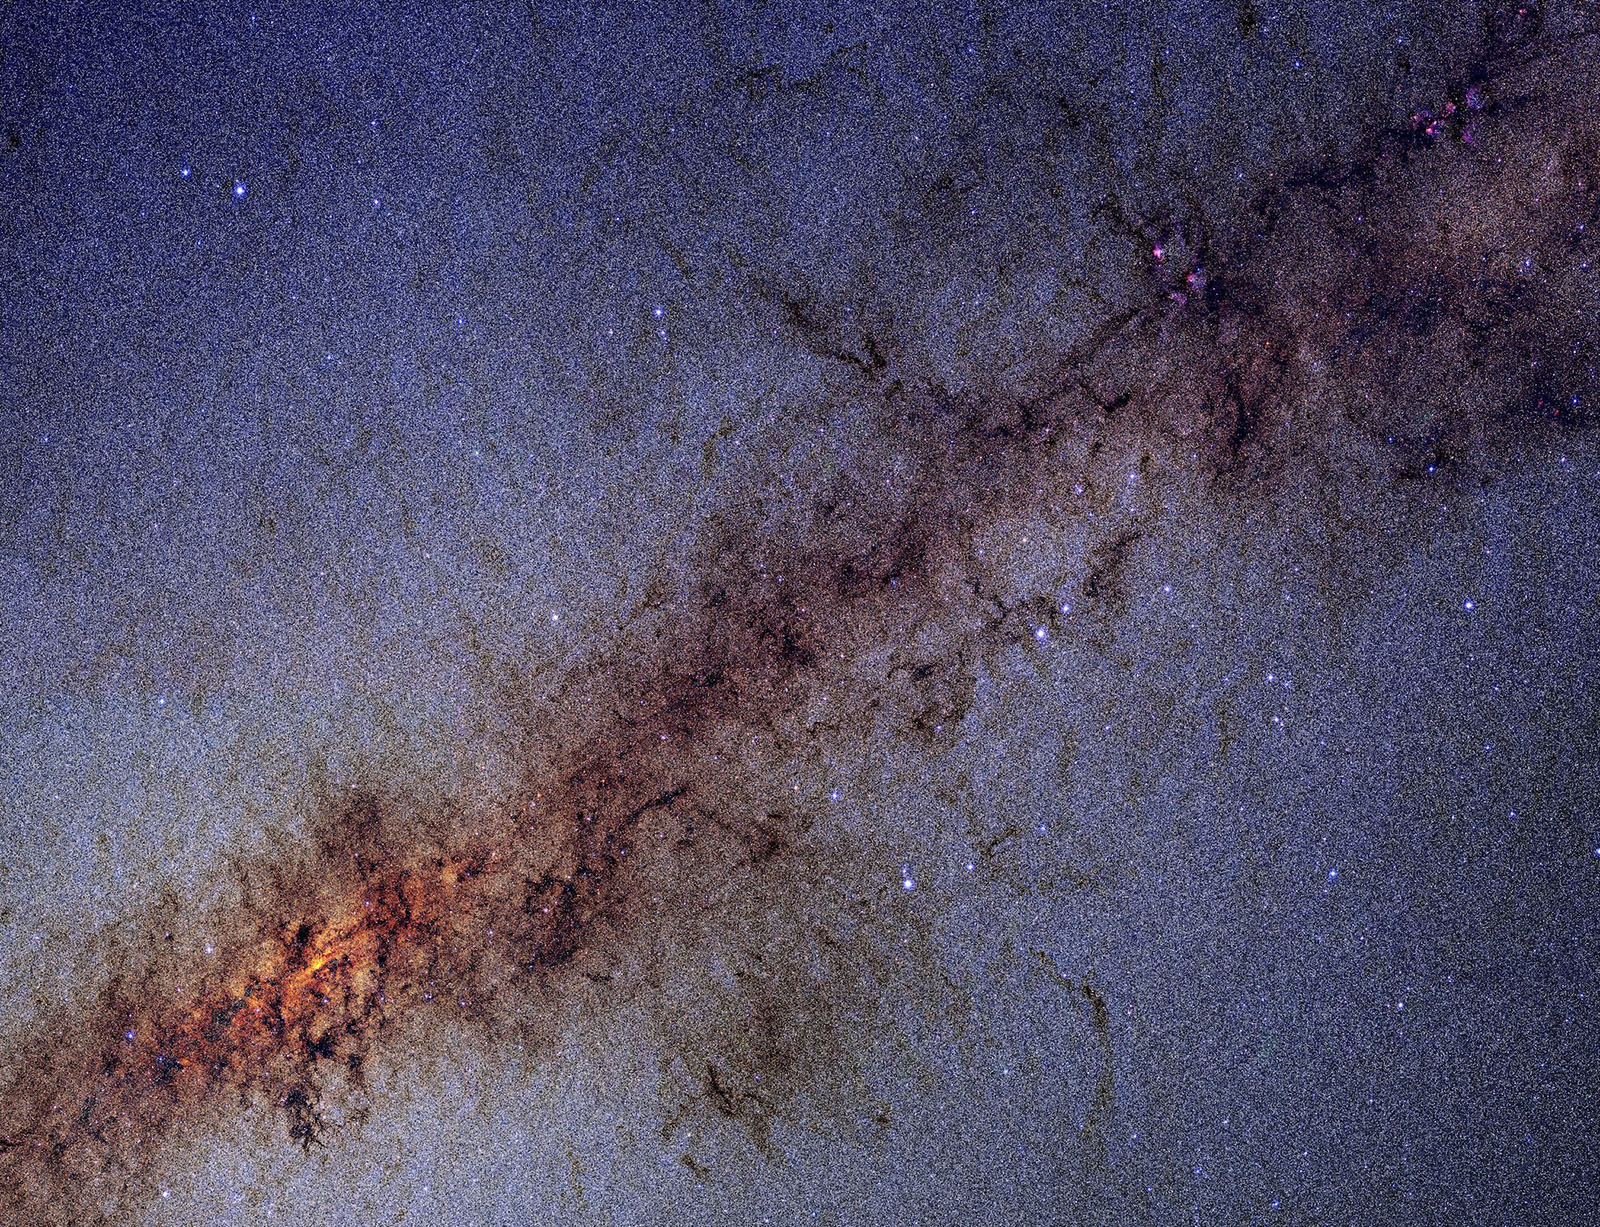 Life and the Transfer of Life Near the Galactic Center